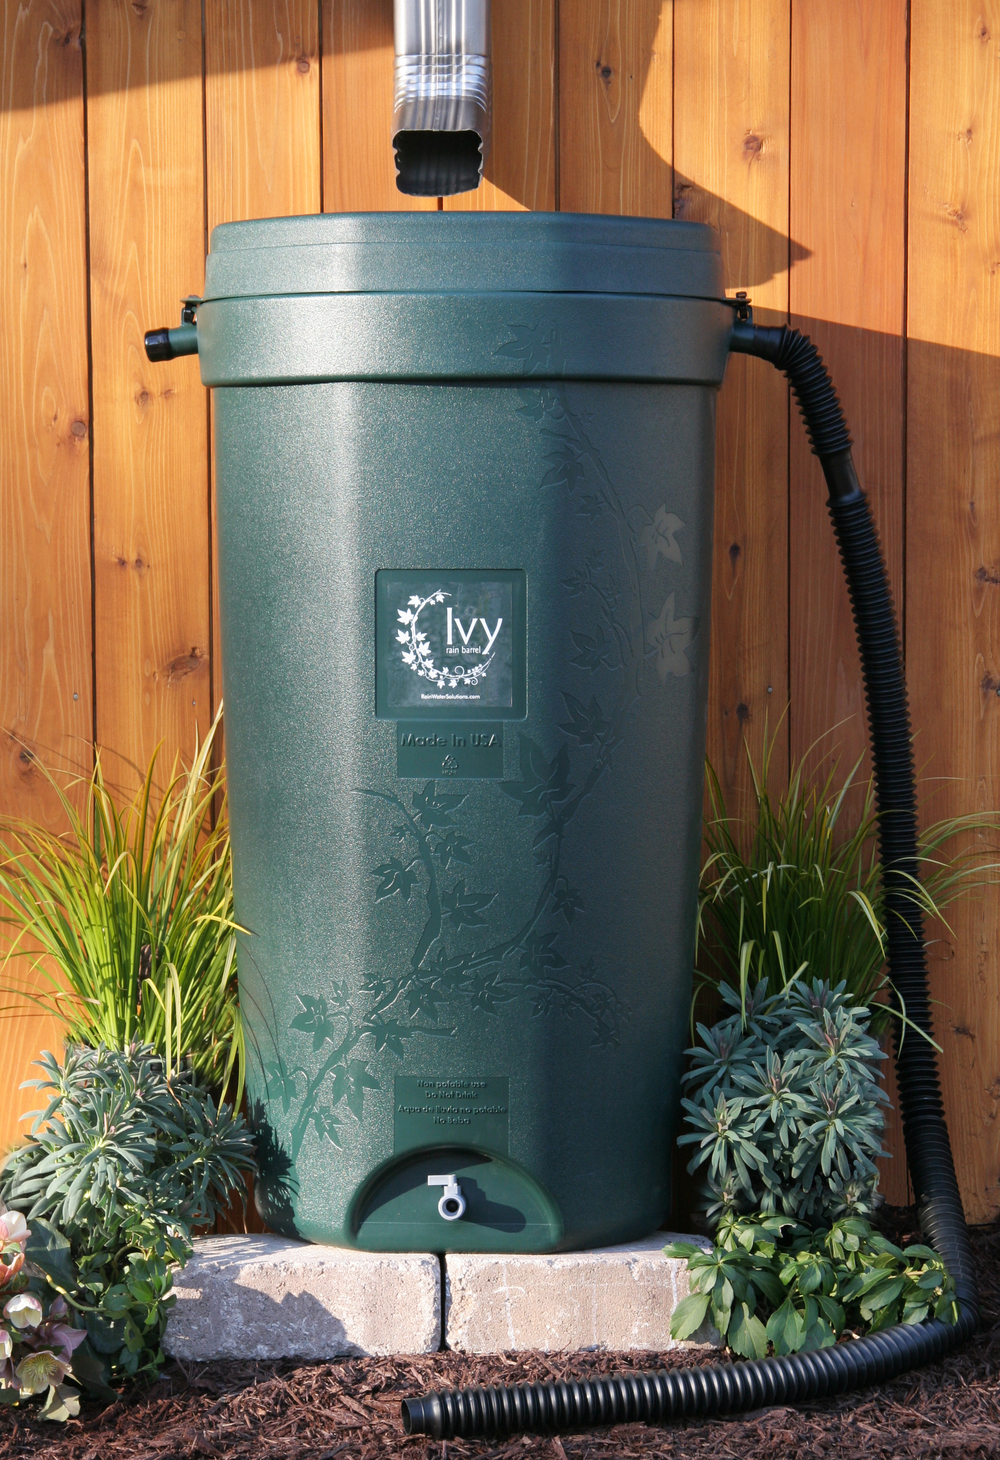 The Ivy rain barrel holds 50 gallons.  Public price $96.99 / BBR member price $87.99.  In stock at Boston Building Resources, 100 Terrace Street.  Hours & Directions